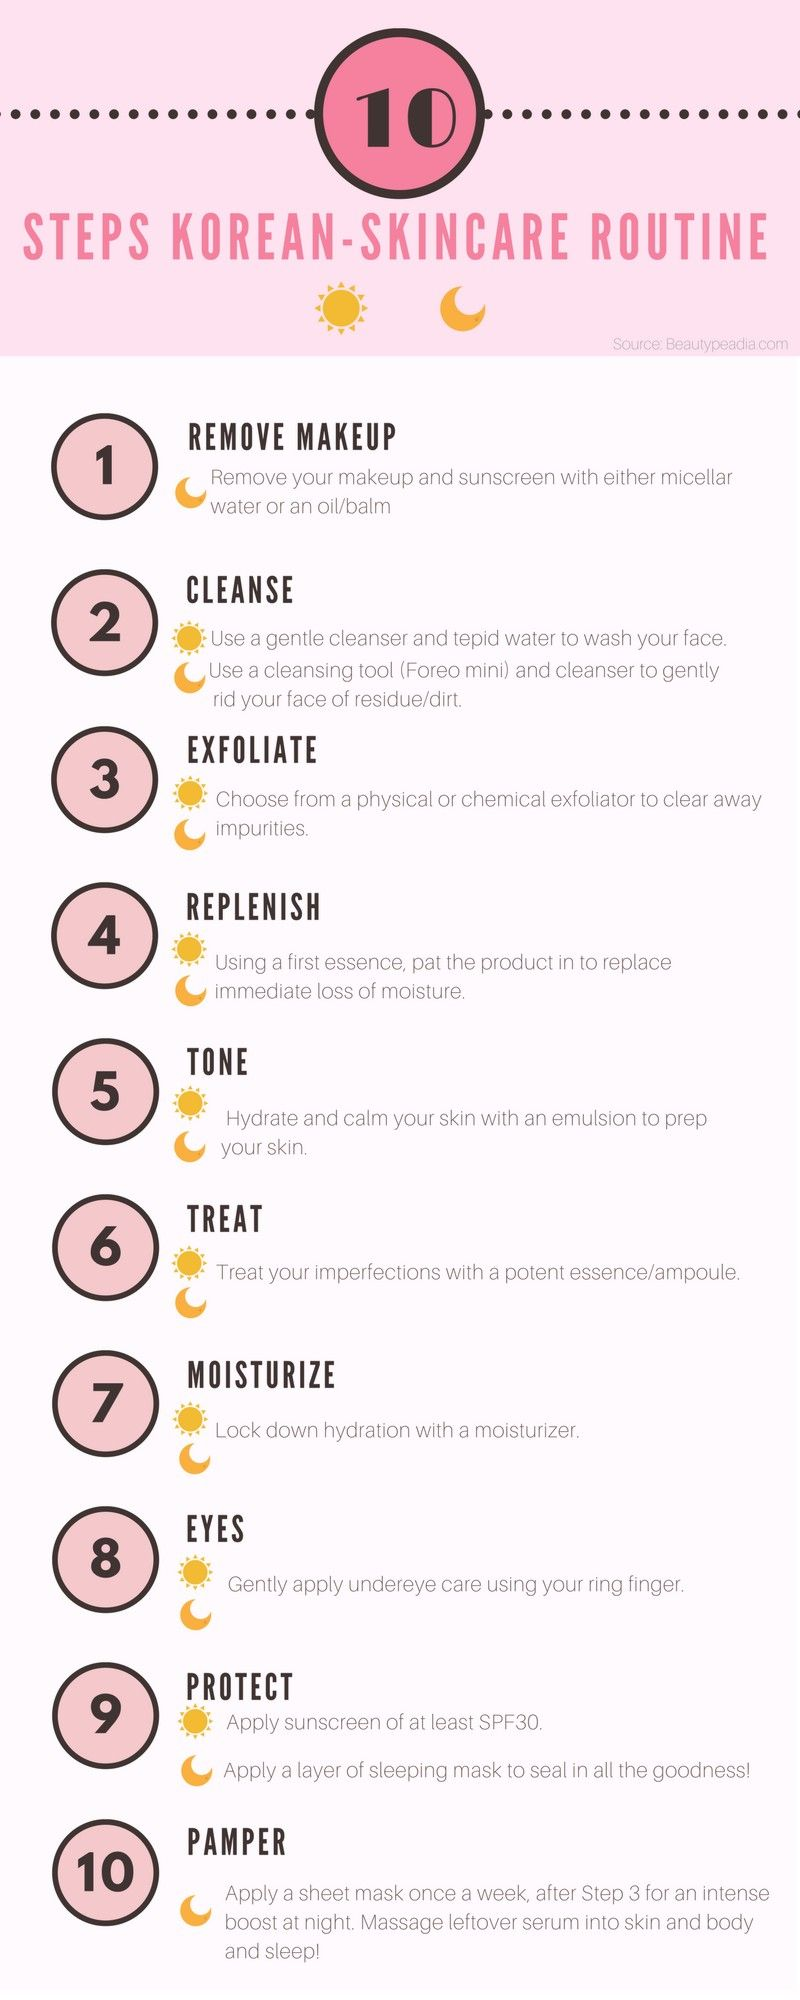 Skin Care Tips For Acne Are You Searching For The Finest Proven Healthy Skin Care Practices Specialized Korean 10 Step Skin Care Skin Care Skin Care Routine